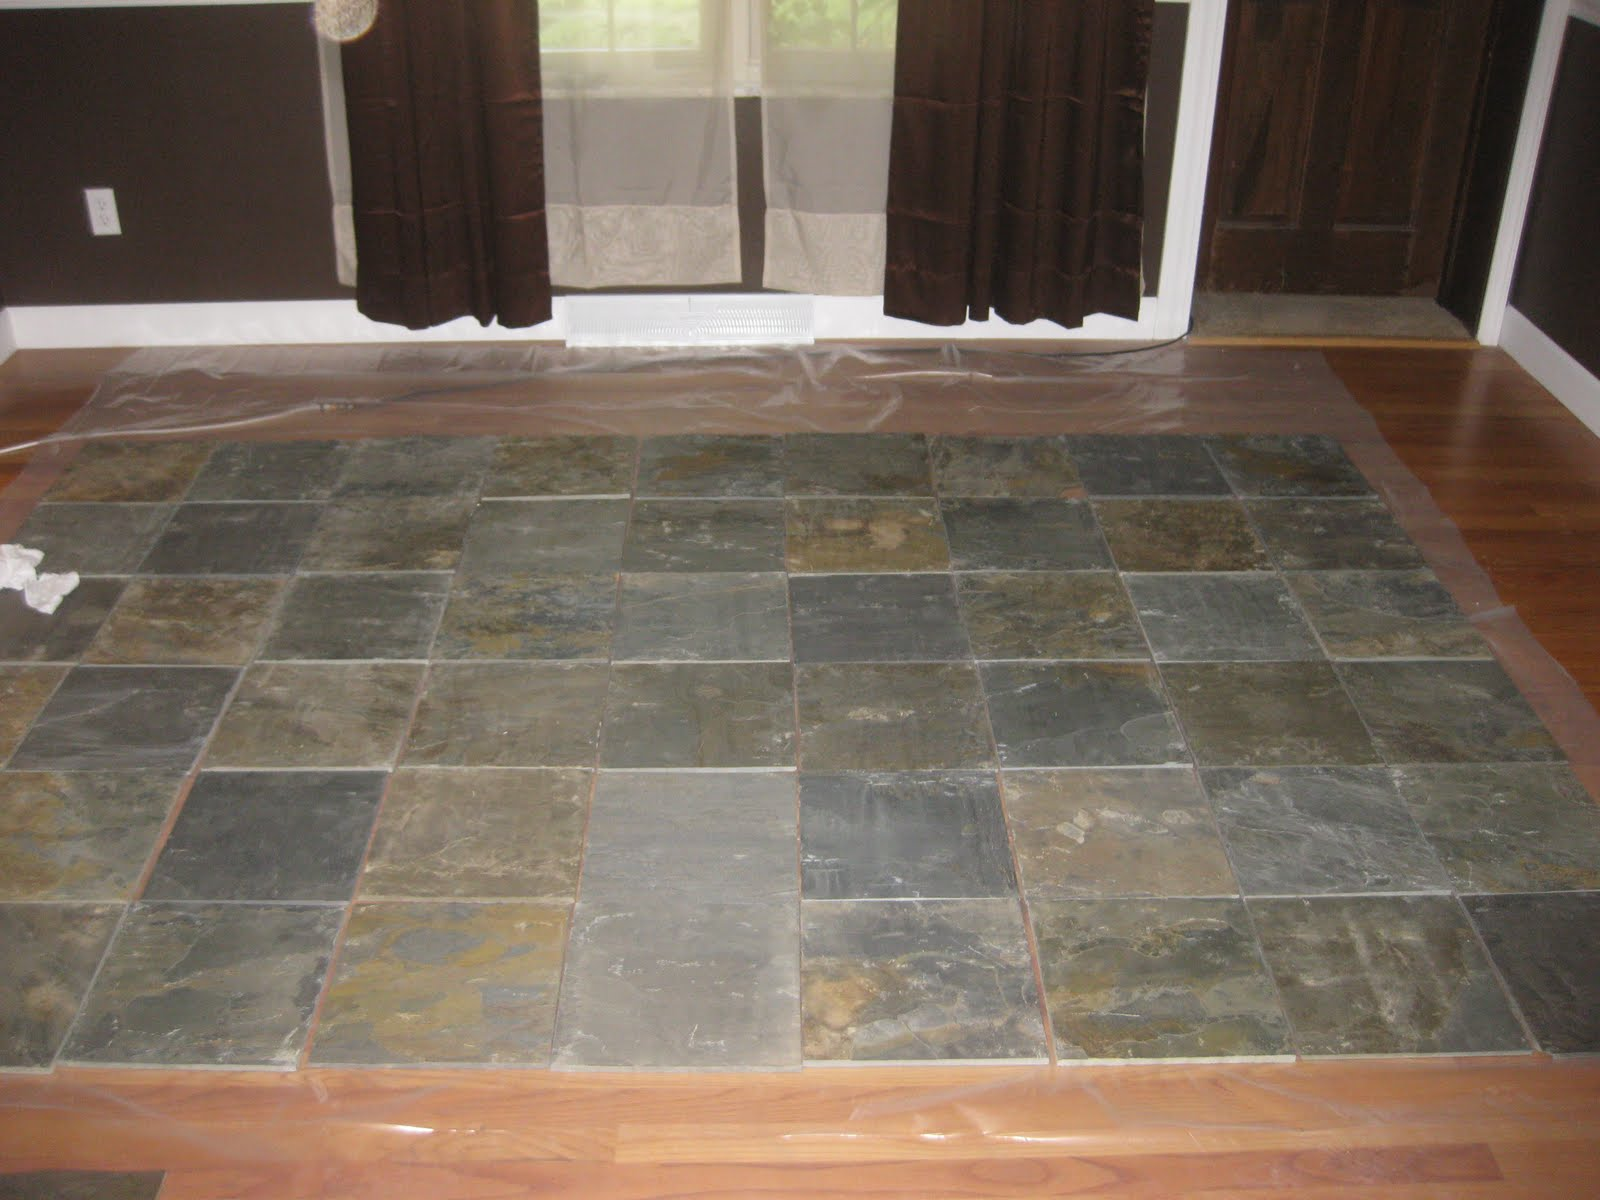 Linoleum Flooring Bathroom Put in a linoleum floor,